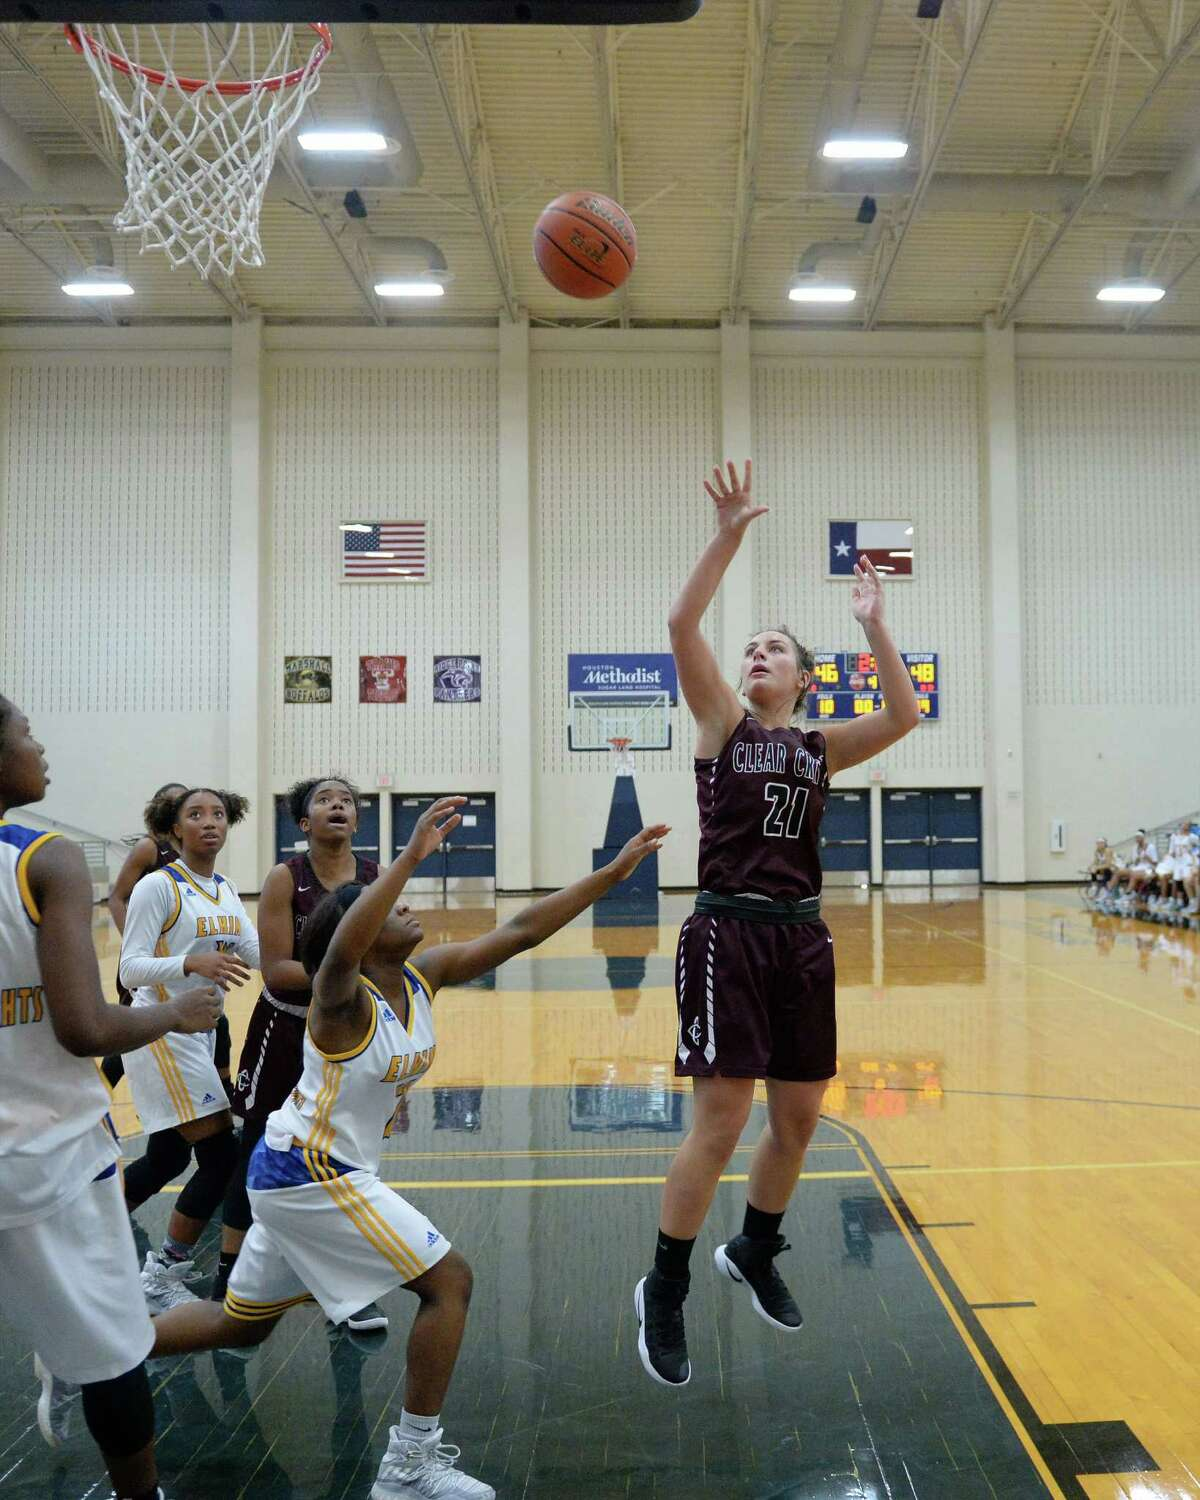 Alex Simmons (21) of Clear Creek attempts a jump shot during the overtime period of a basketball game between the Clear Creek Wildcats and the Elkins Knights during the Ft. Bend ISD Varsity Girls Tournament on Thursday November 17, 2016 at the Buddy Hopson Field House, Missouri City, TX.